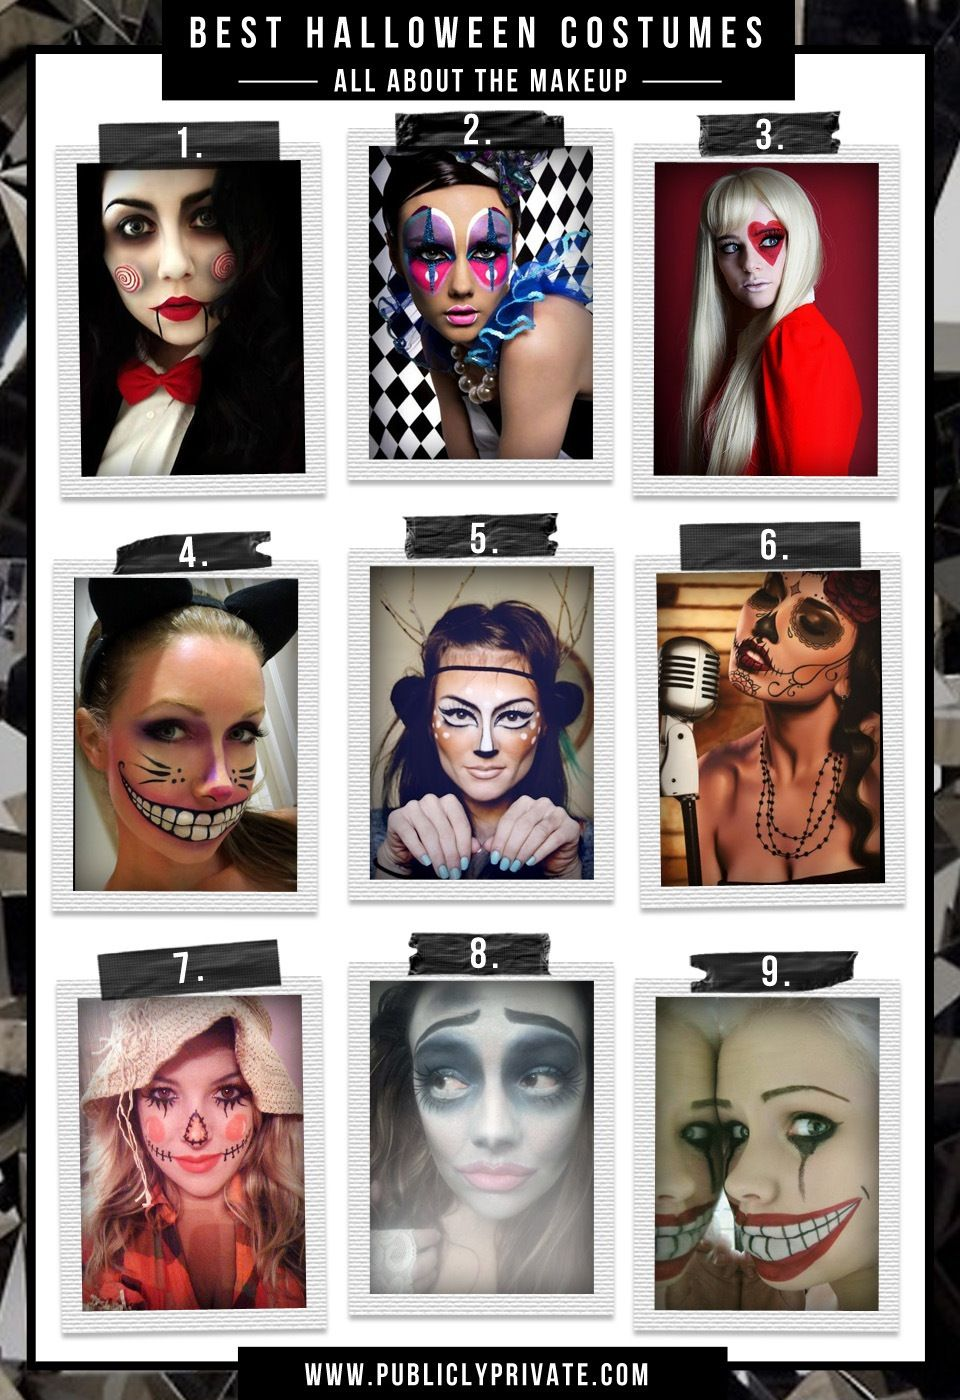 Best halloween costumes and diy makeup ventriloquist doll sexy